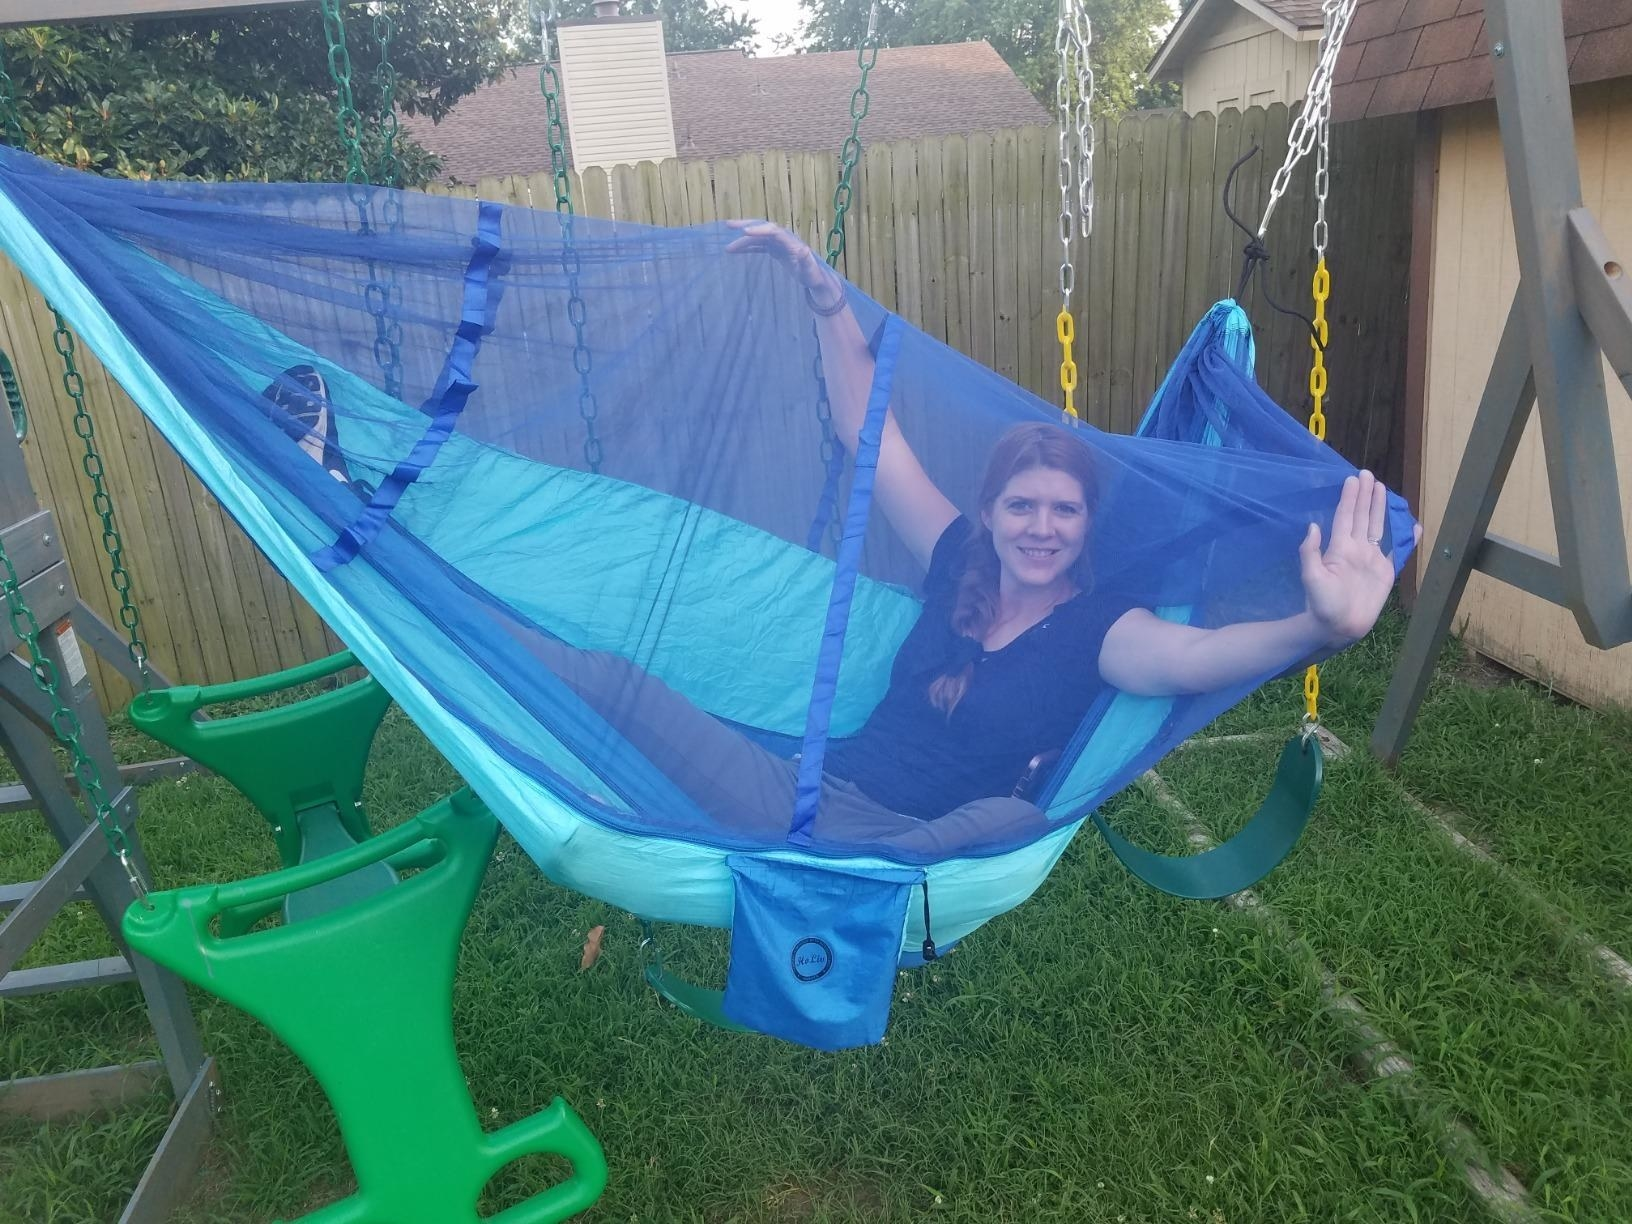 Reviewer spread out in the hammock with arms outstretched to show netting